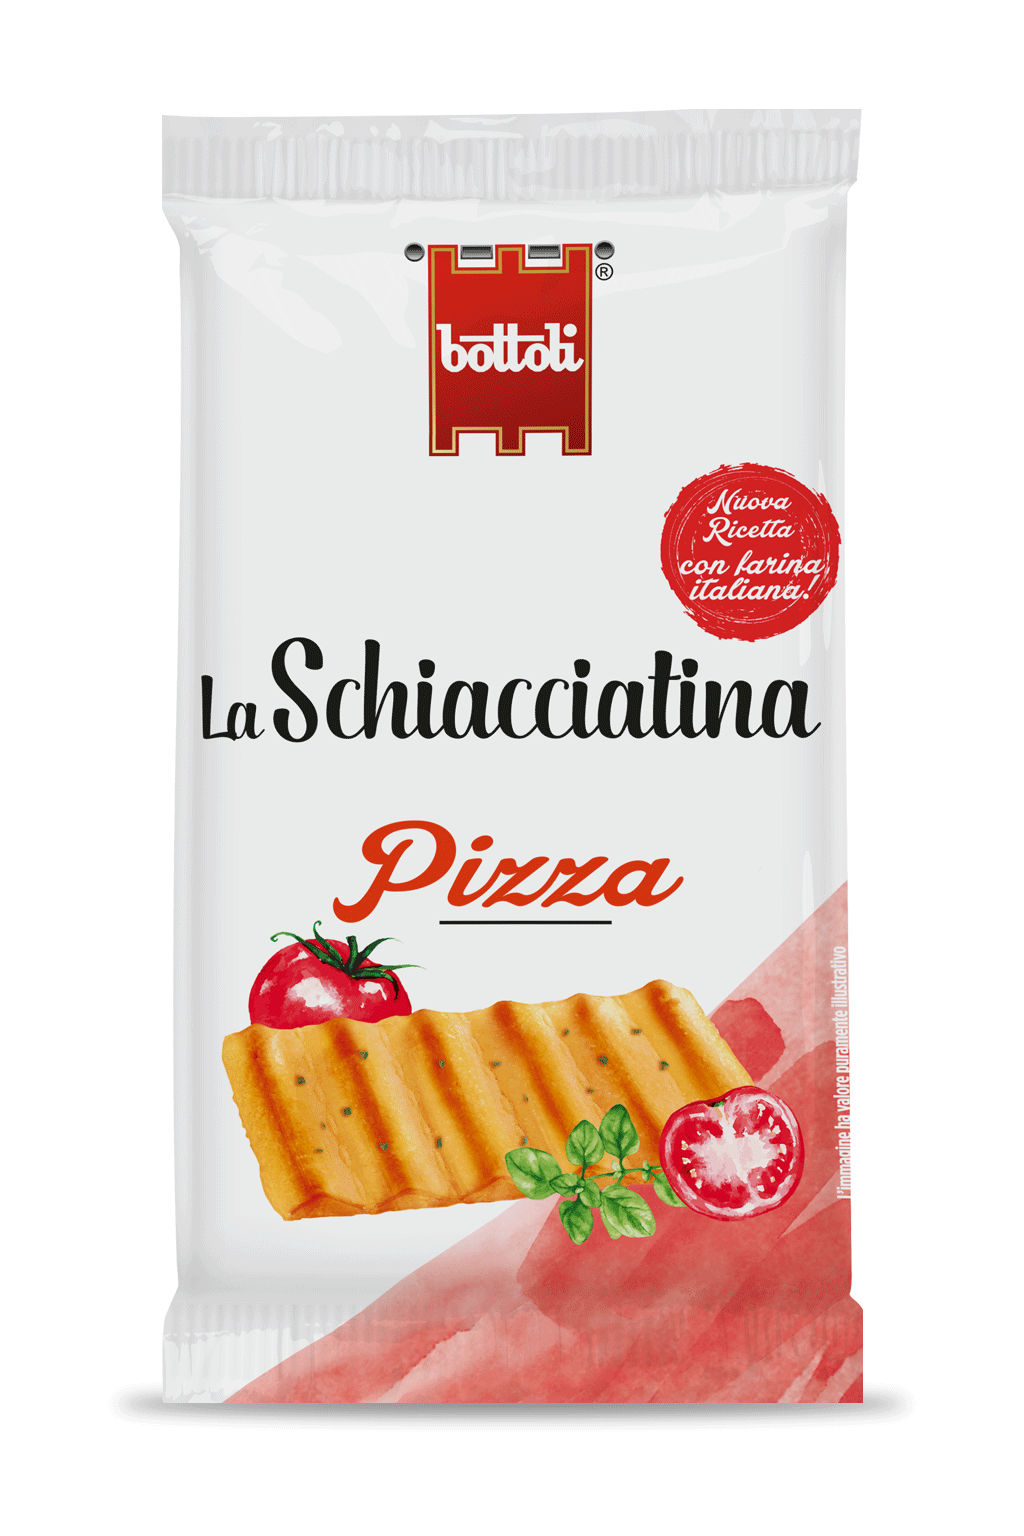 Schiacciatina Pizza single-serve pack